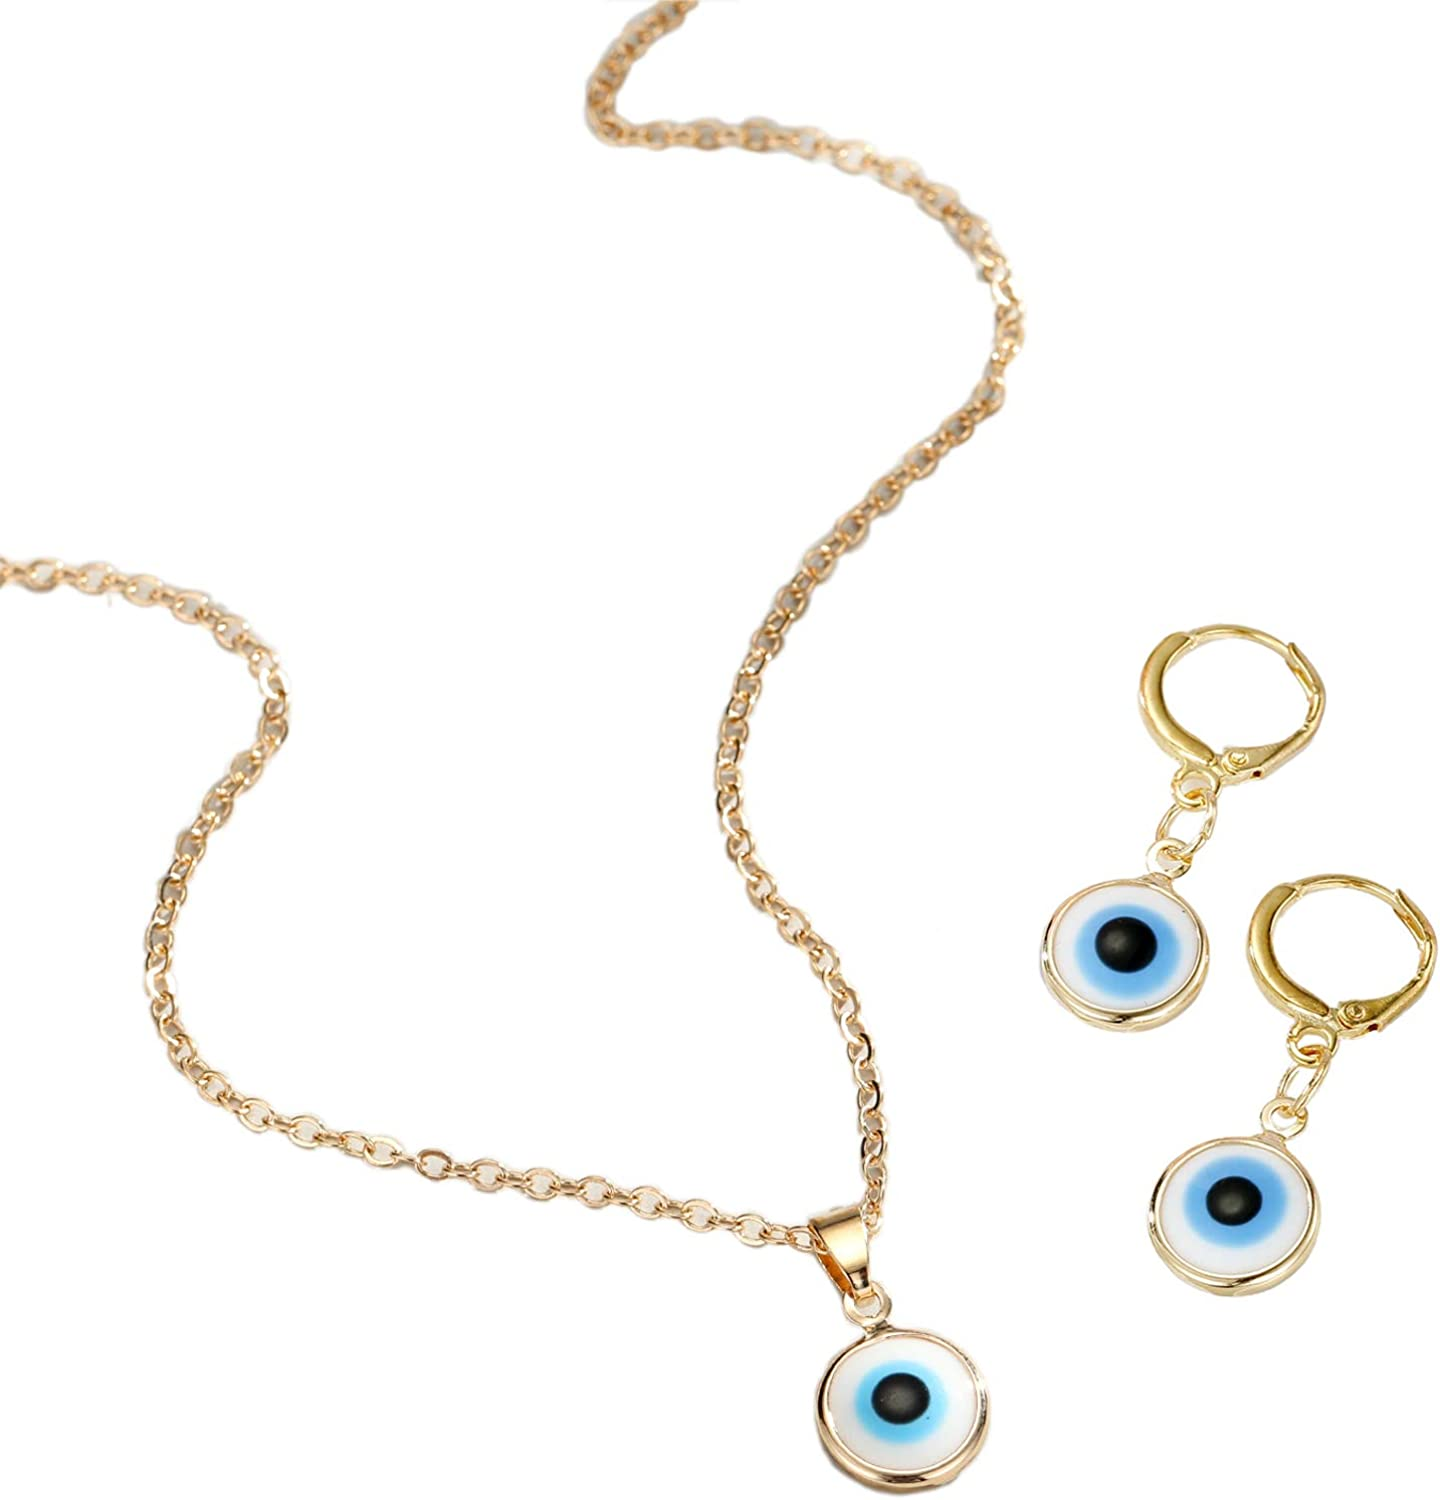 3 Pcs Evil Eye Necklace Dangle Earrings Set Chain Charm Blue Eyes Amulet Pendant Necklace Ojo Turco Kabbalah Protection Drop Earrings Adjustable Collar Necklace Delicate Jewelry Gift